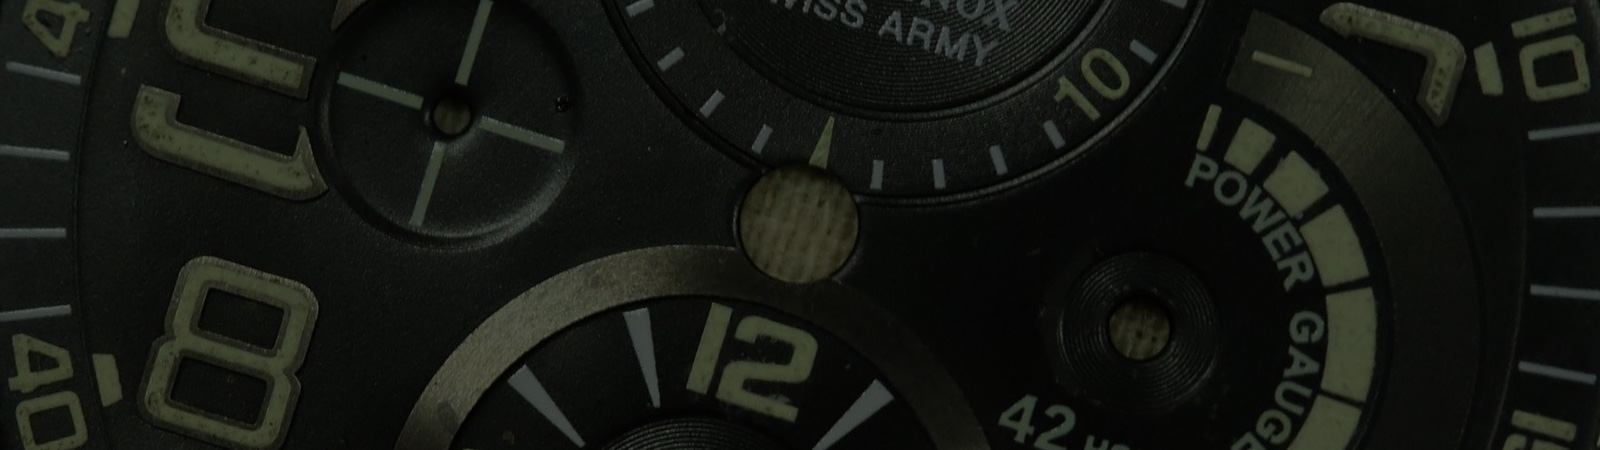 WATCH SLEUTH: The Mystery of a Loose Dial from Victorinox Swiss Army's 2008 Airboss Mach 6 Power Gauge Limited-Edition